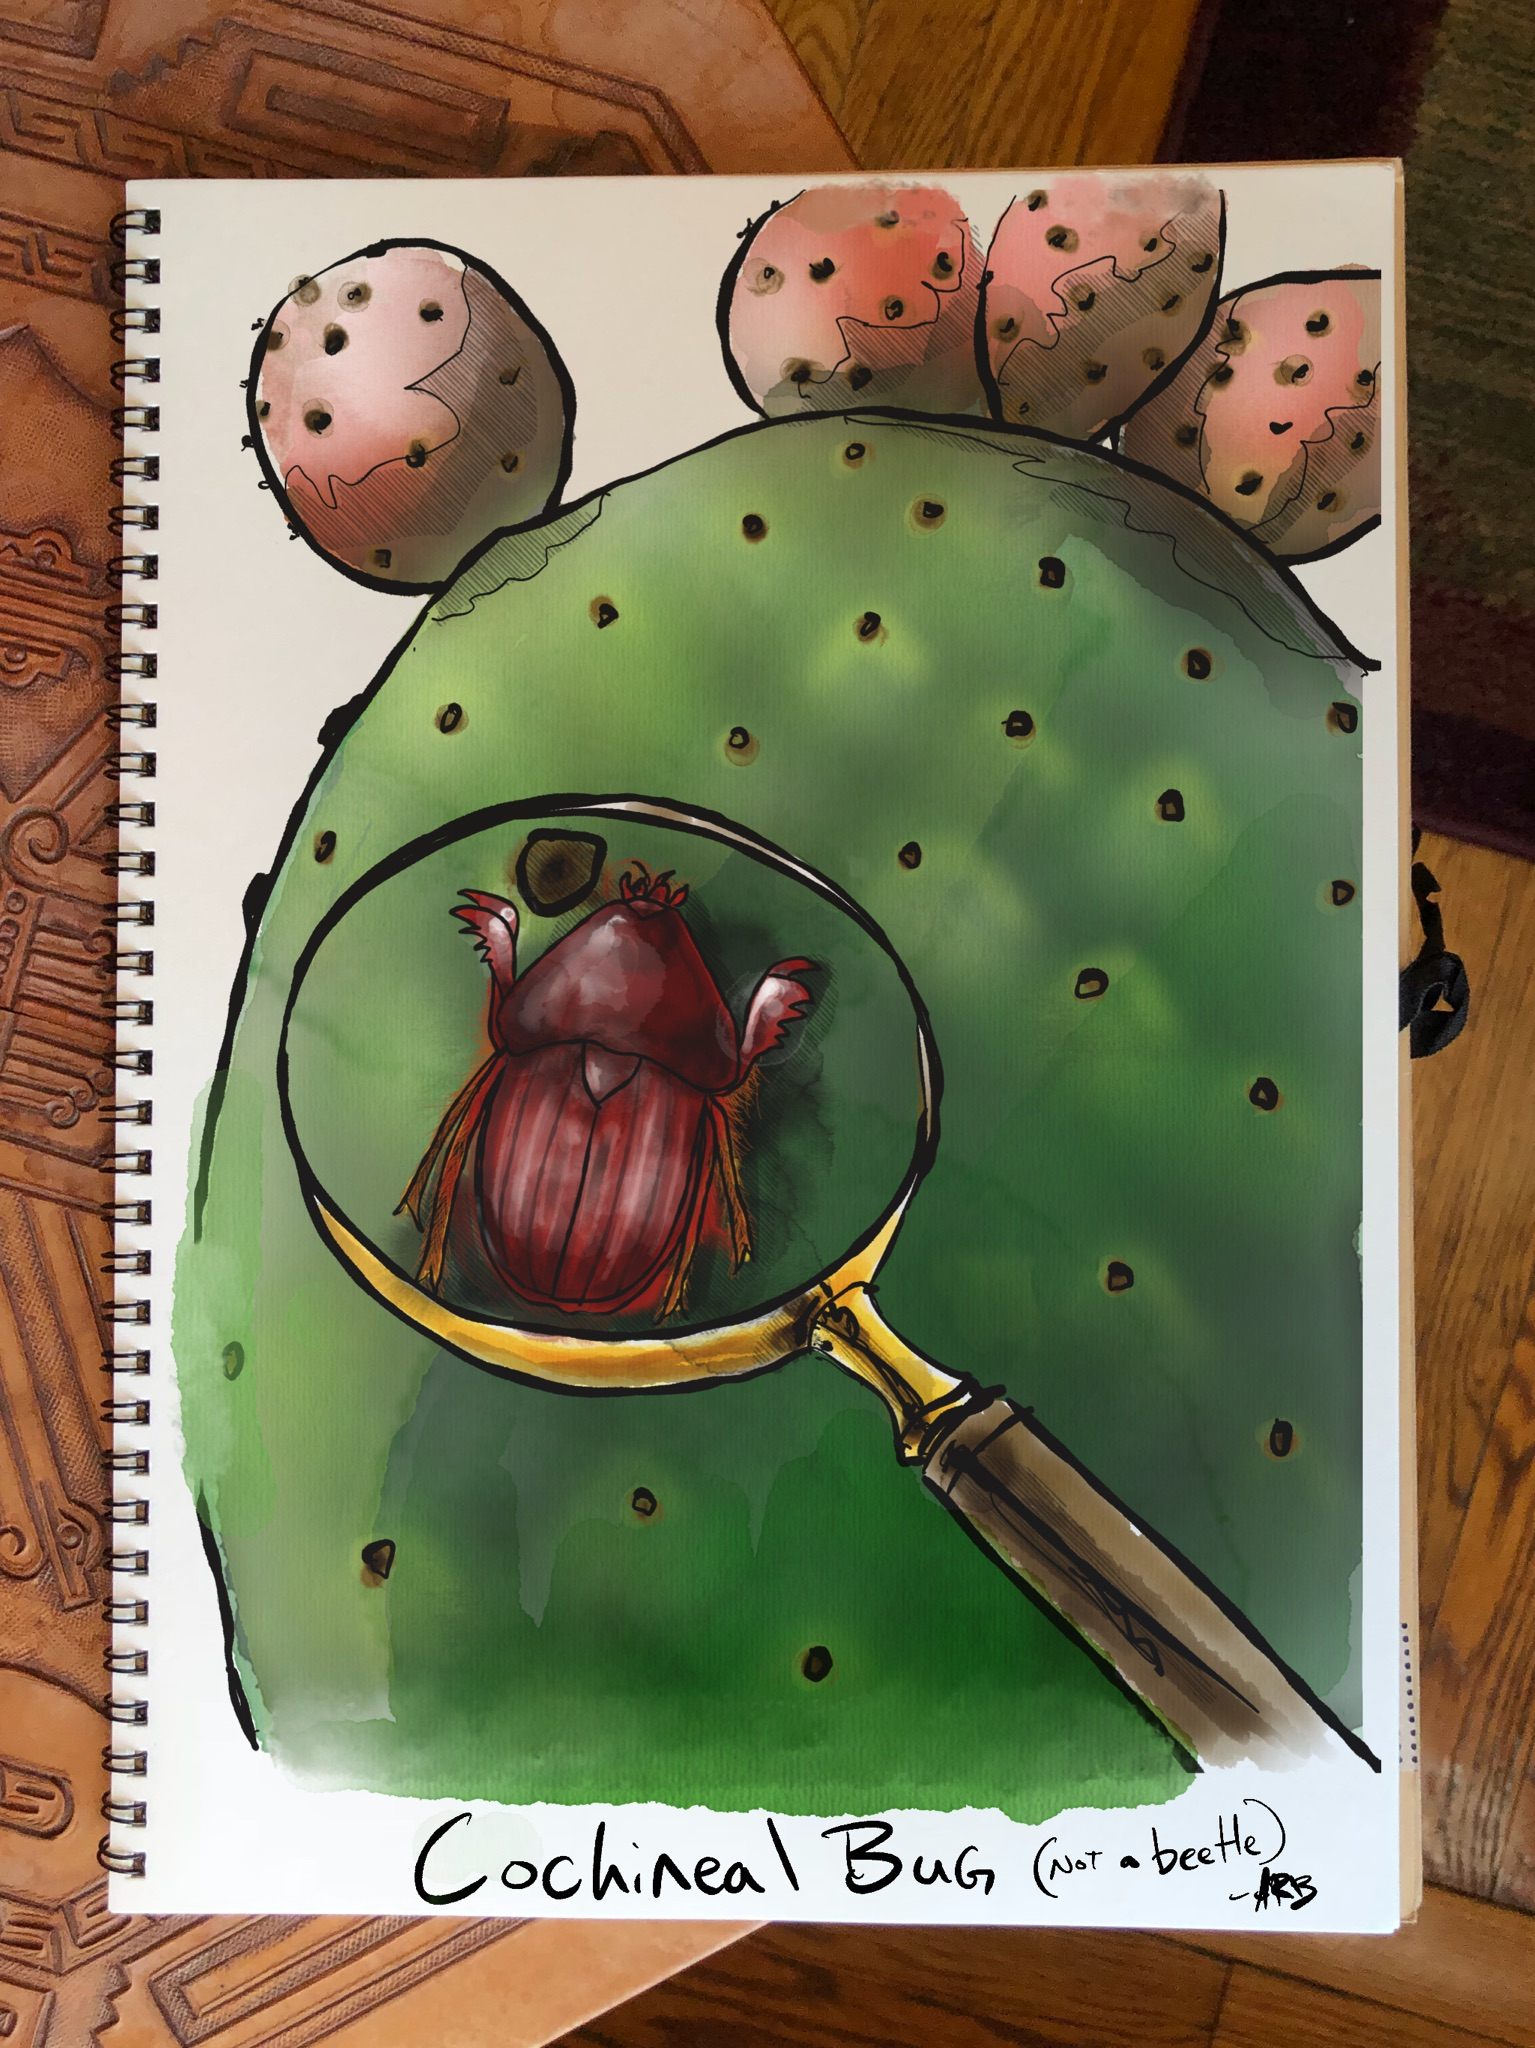 cochineal bug used for carmine red dye andrew bohrer.jpeg